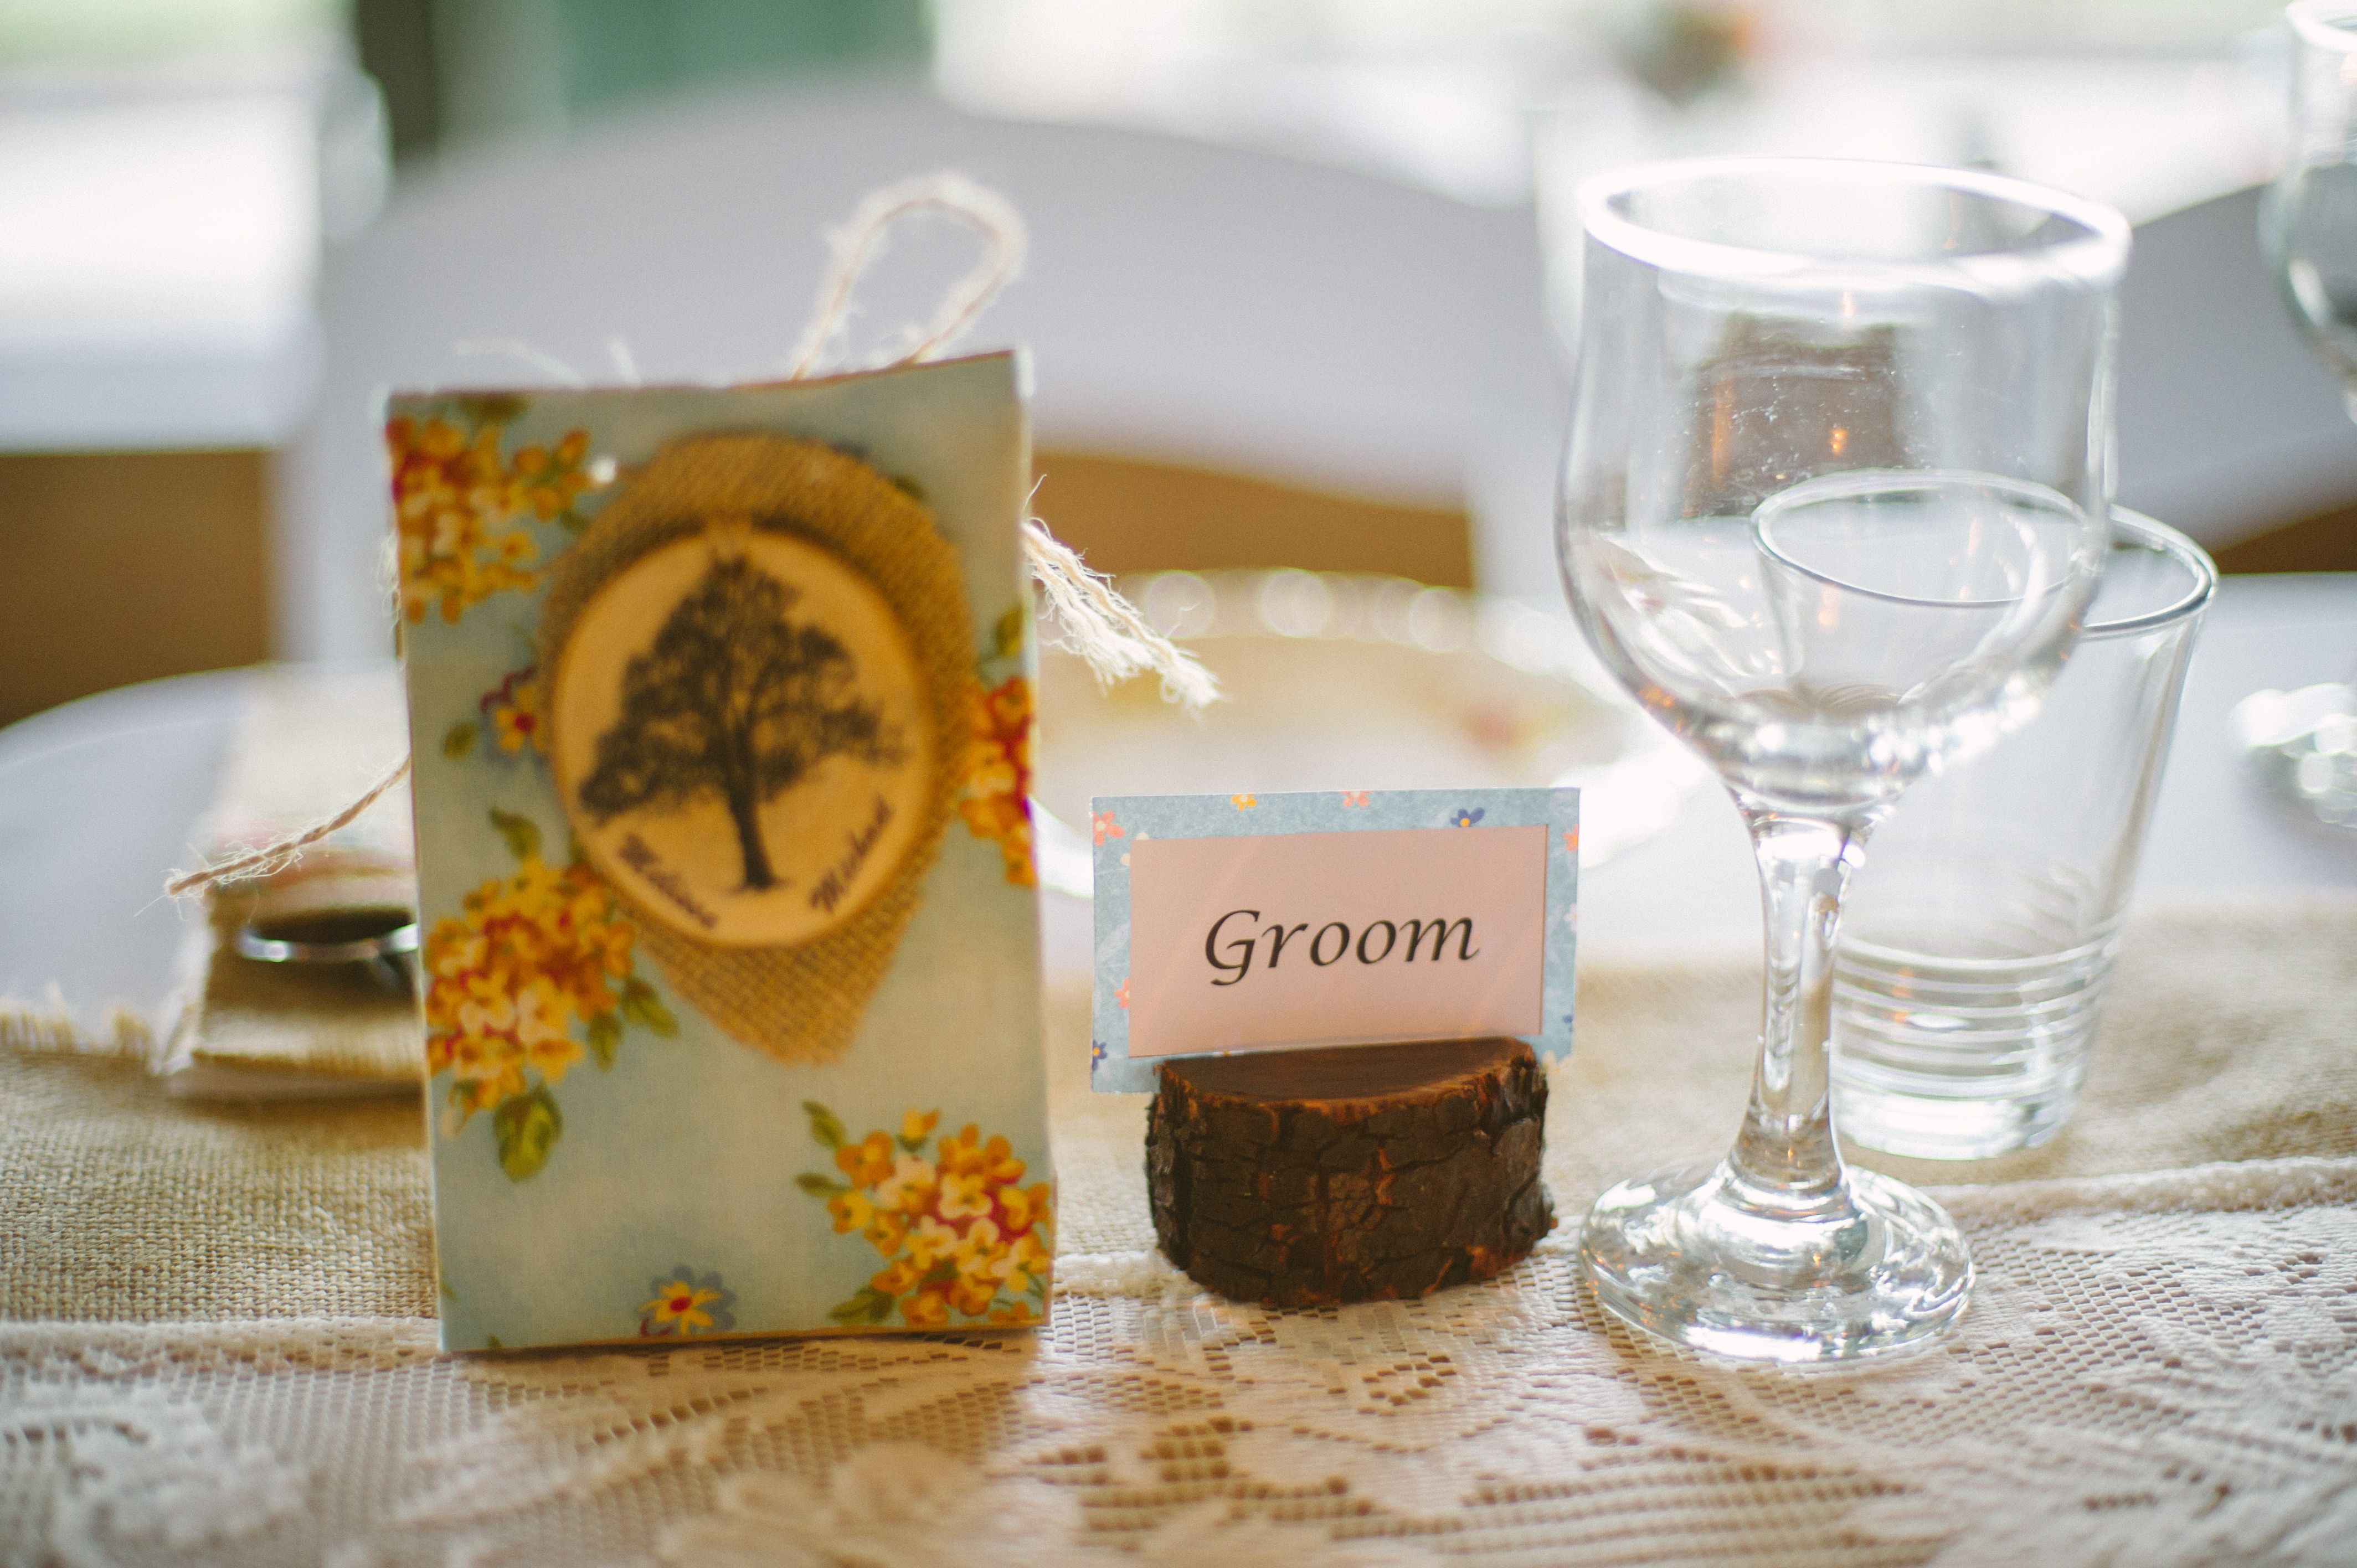 Wedding Reception Decor: I hand made the table decorations including the table setting cards and the favours which were filled with mini choc chip cookies.